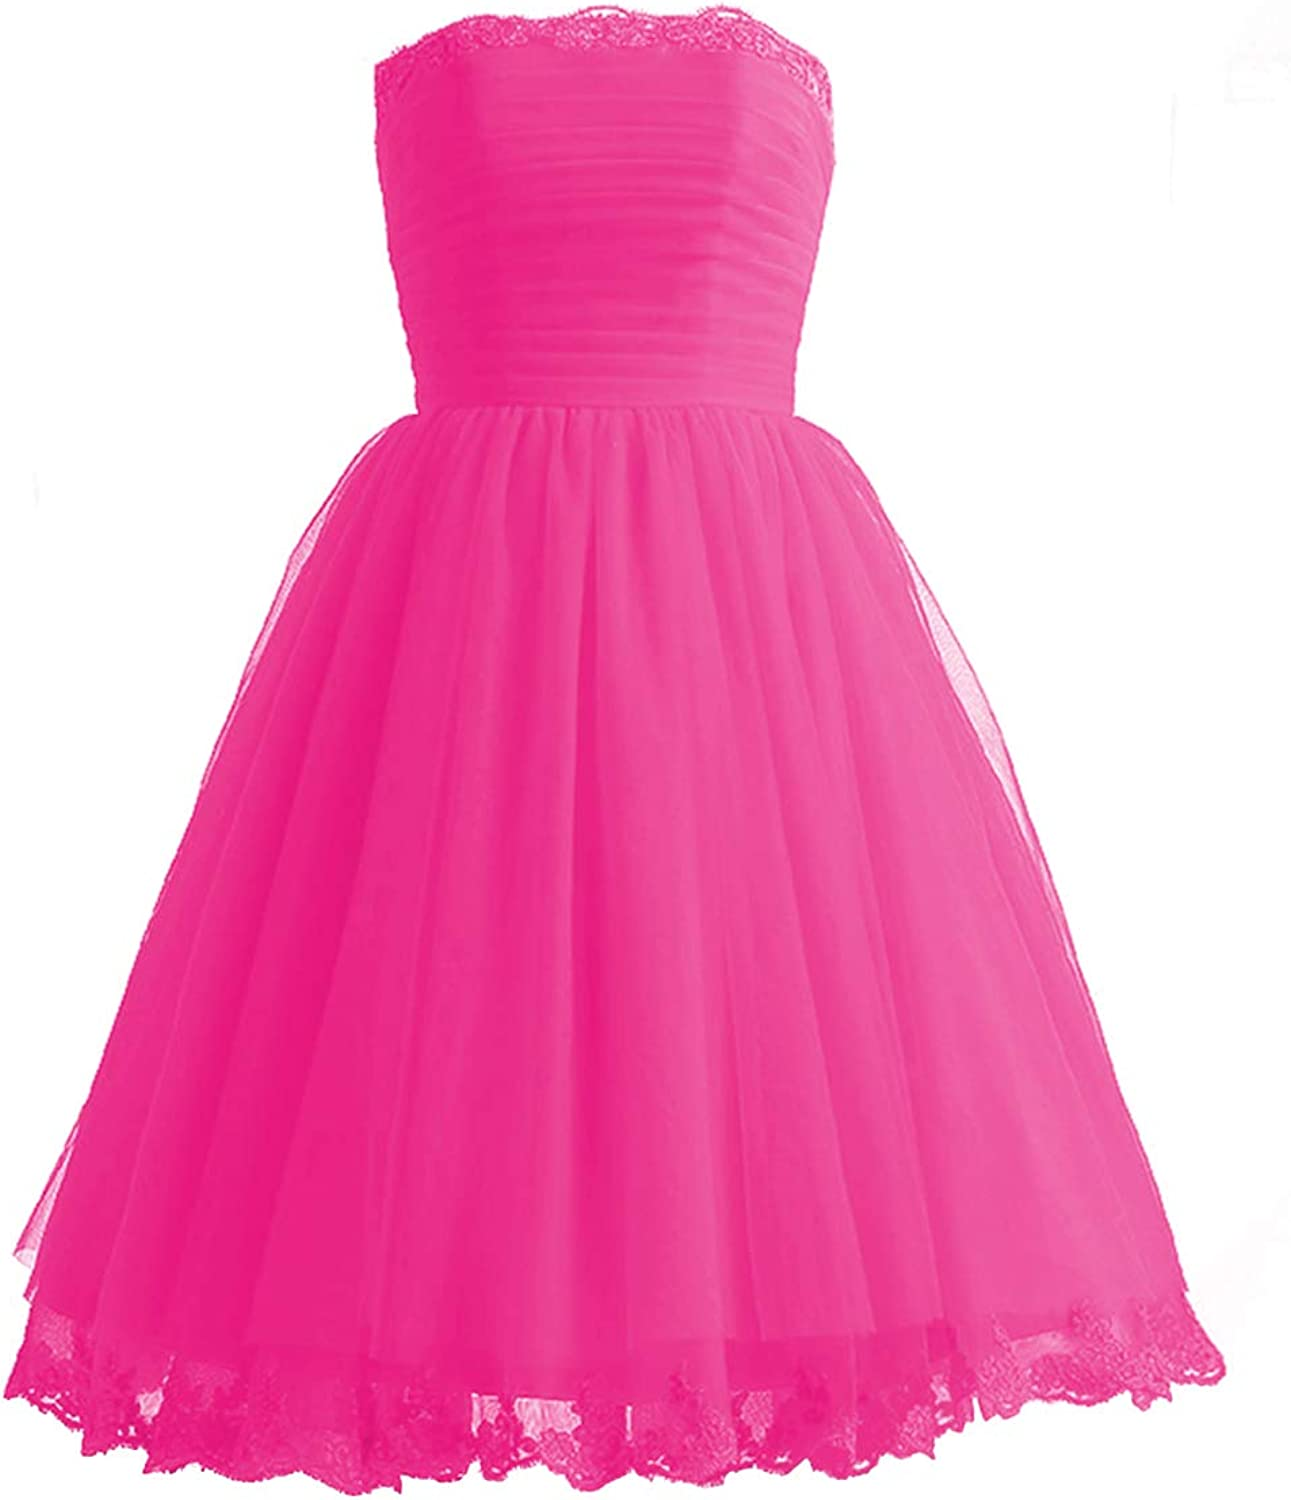 Homecoming Dresses Prom Gowns Strapless Short Tulle Lace Party Formal Dress